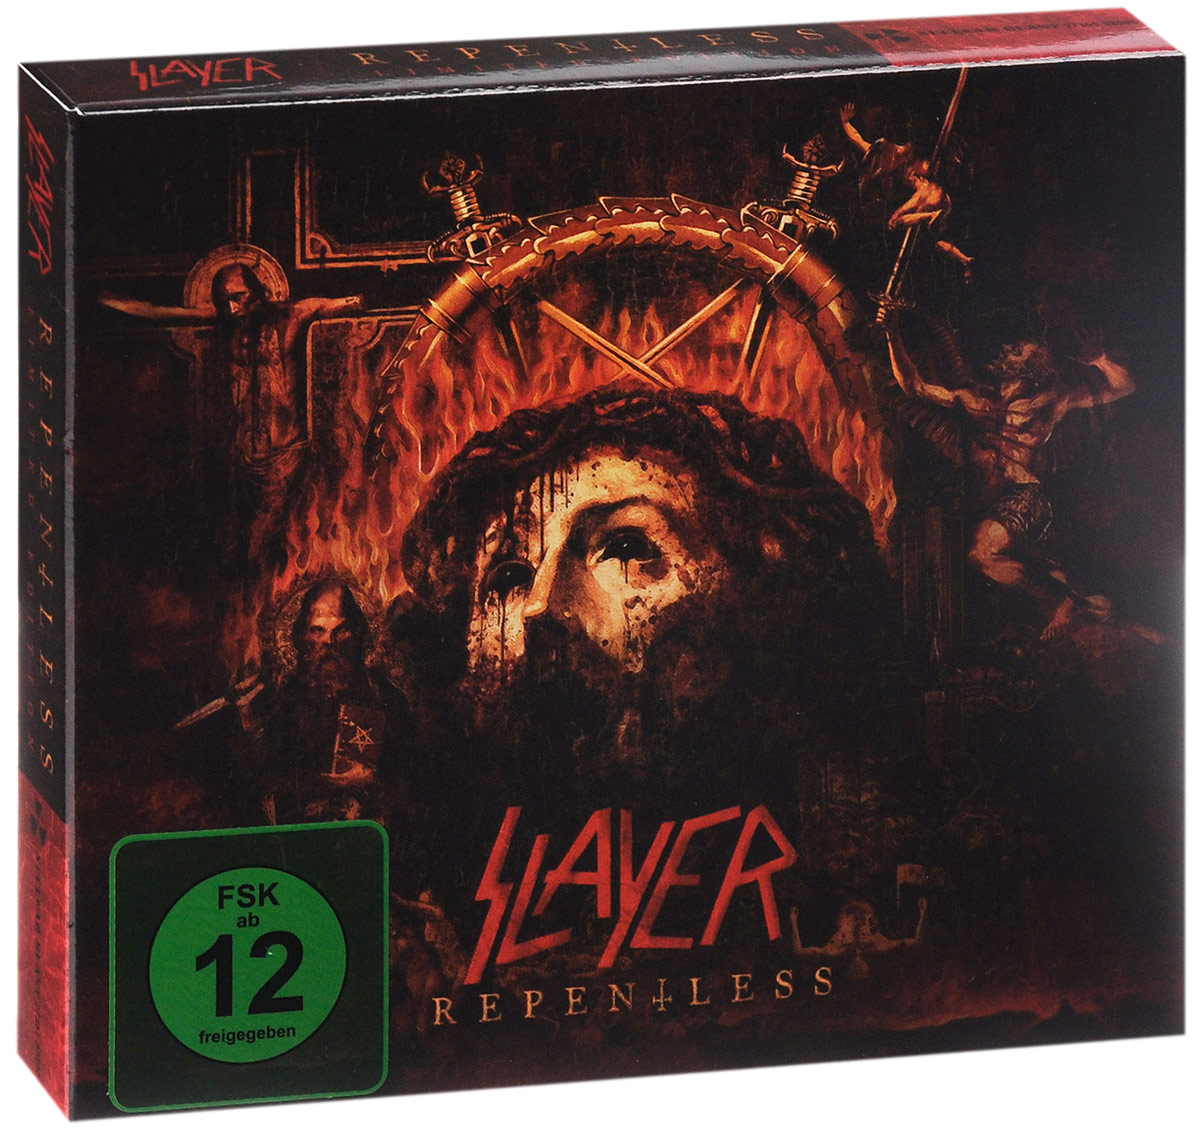 Slayer Slayer. Repentless. Limited Edition (CD + DVD) 10 hd digital lcd screen car headrest monitor dvd cd player ir fm with remote controller remote mount bracket car player new